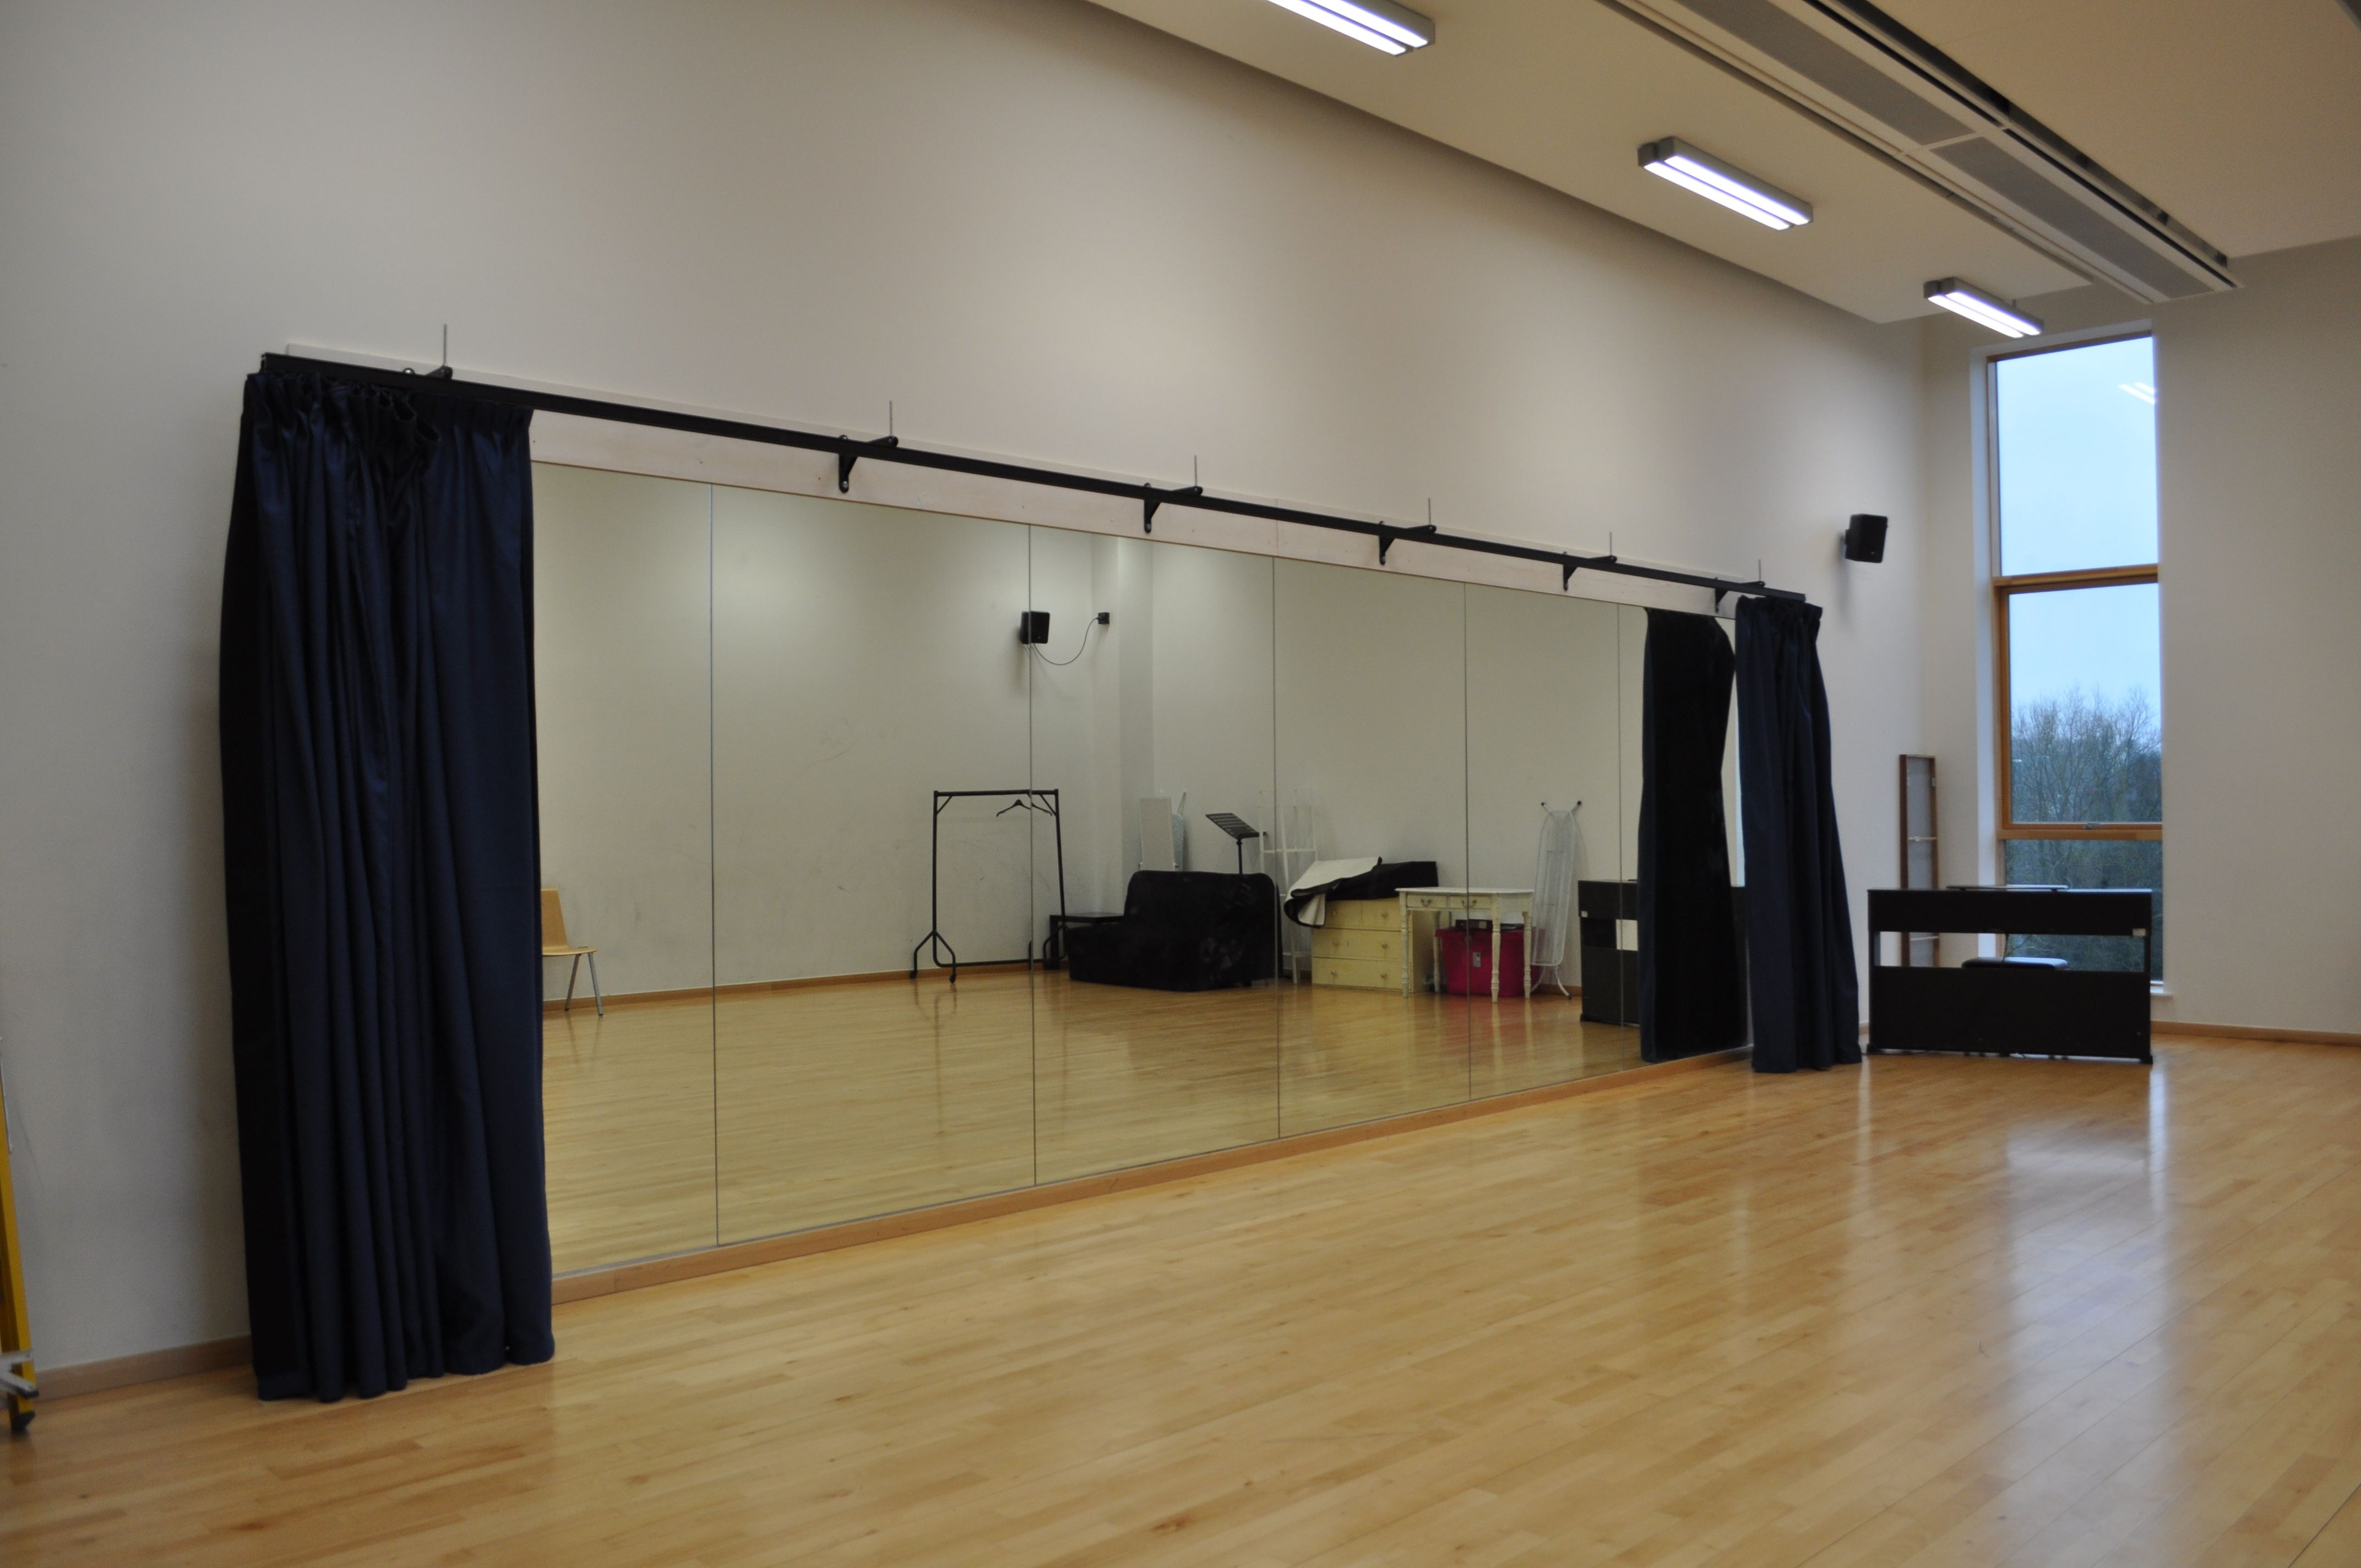 Our optimax studio mirrors and duratrack curtains